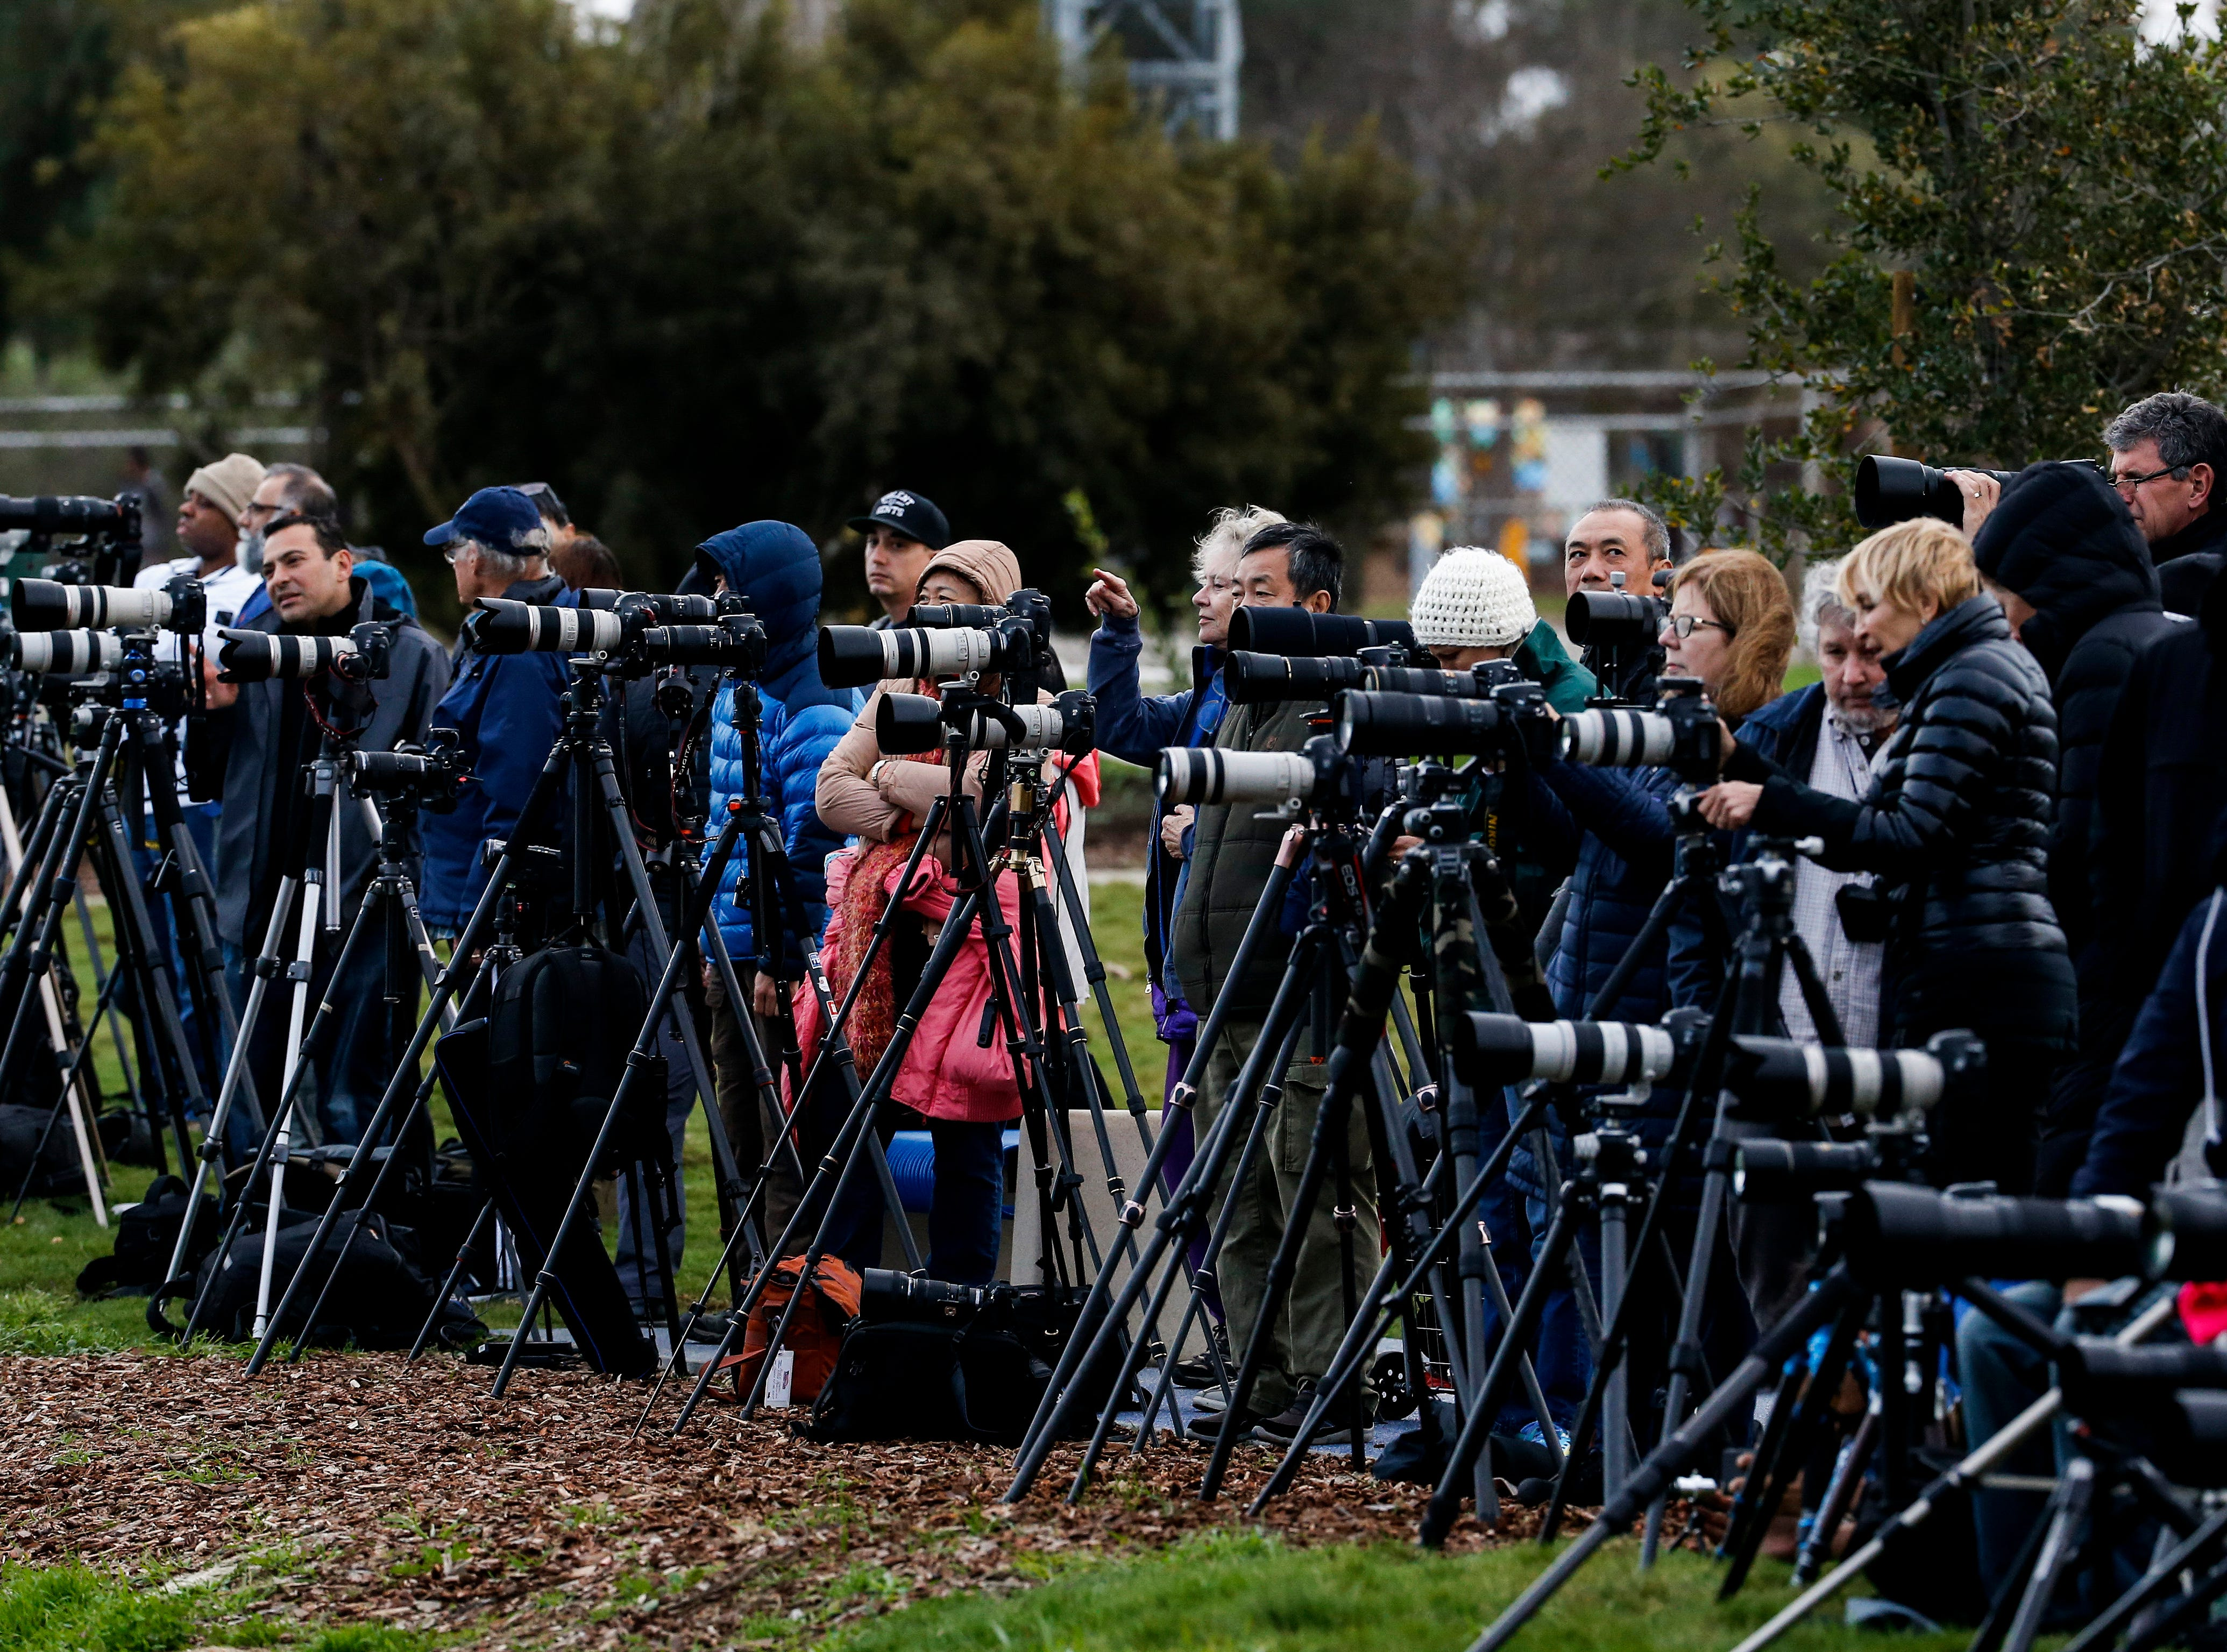 Photographers stage at Kenneth Hahn Park in Los Angeles as they wait to capture the supermoon, Sunday, Jan. 20, 2019. The year's first supermoon, when a full moon appears a little bigger and brighter thanks to its slightly closer position to Earth, is one of two lunar events Sunday. If skies are clear, a total eclipse will also be visible in North and South America, and parts of Europe. (AP Photo/Ringo H.W. Chiu)